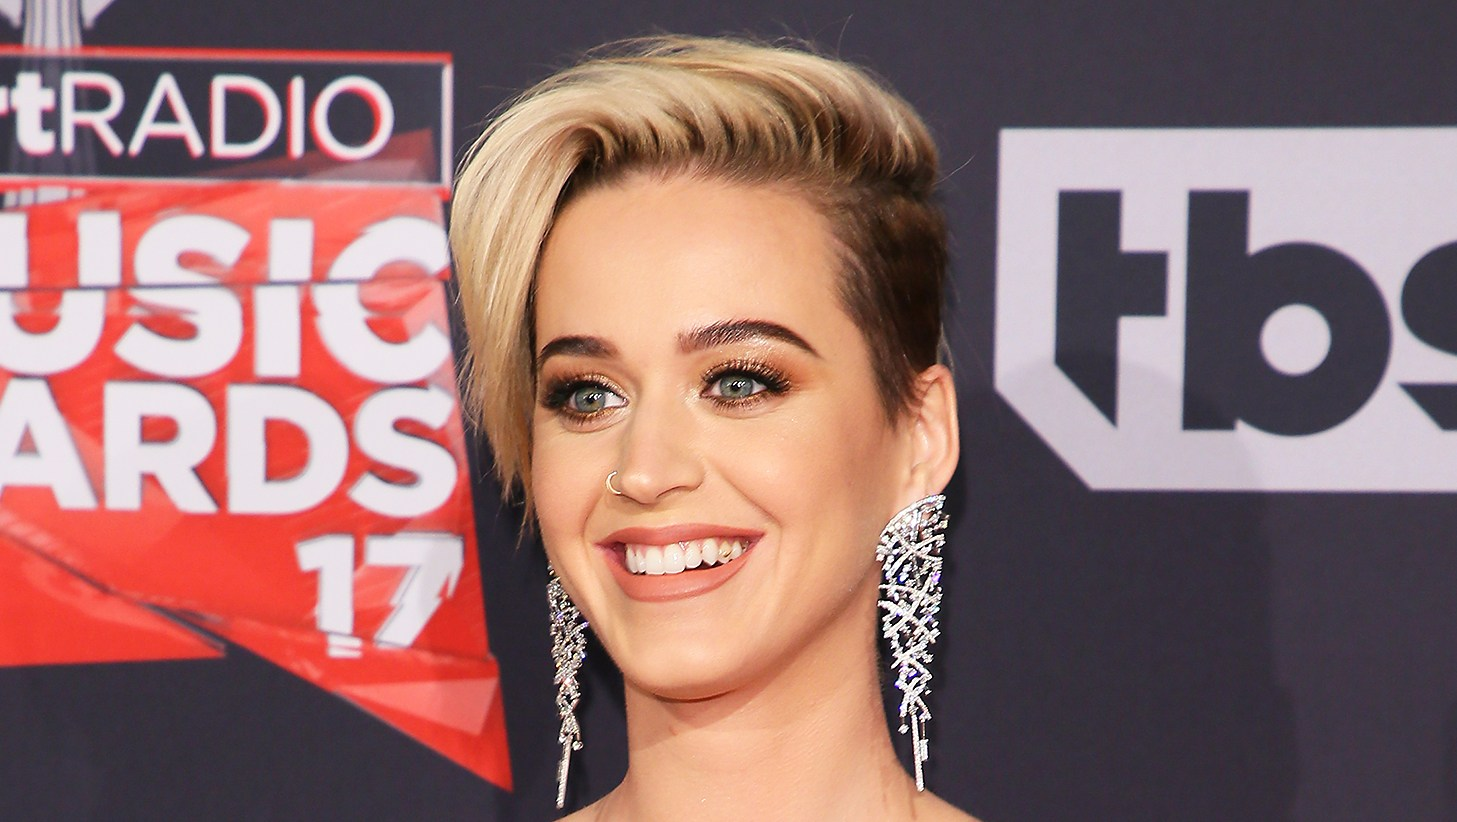 Katy Perry tooth jewelry